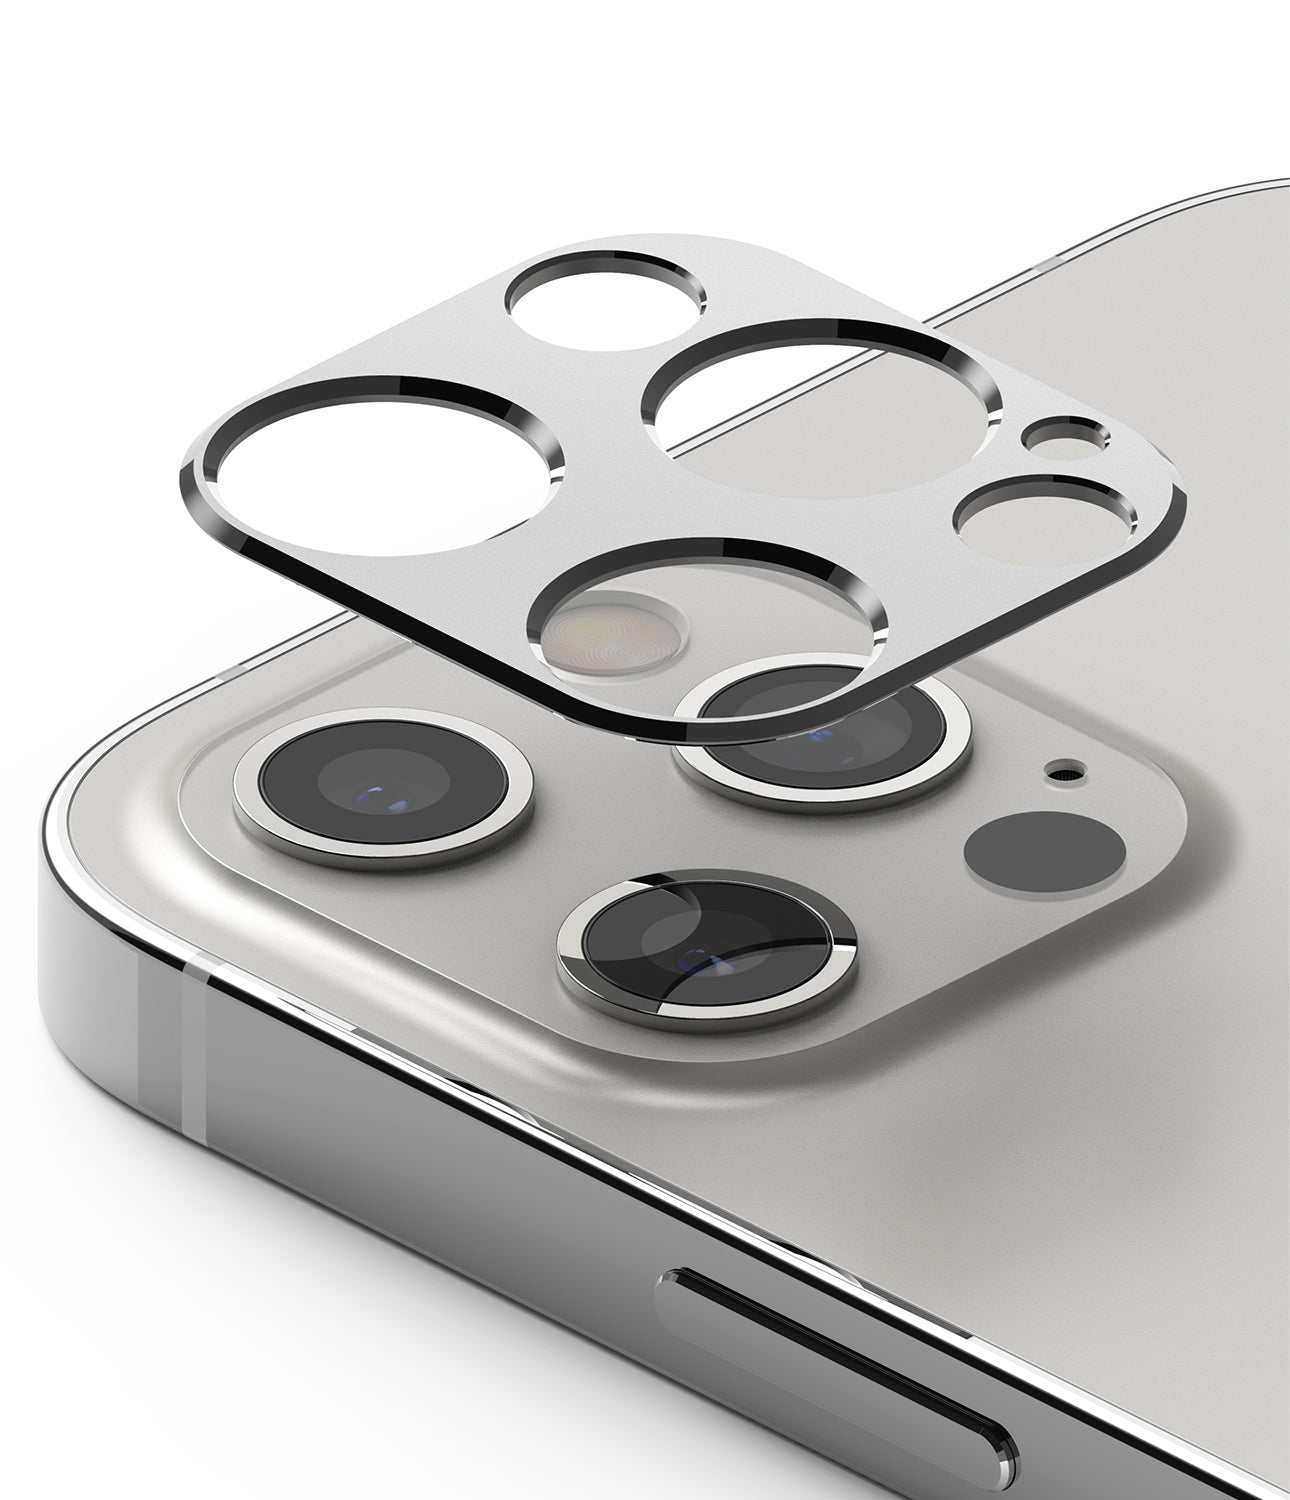 ringke camera styling for iphone 12 pro - silver